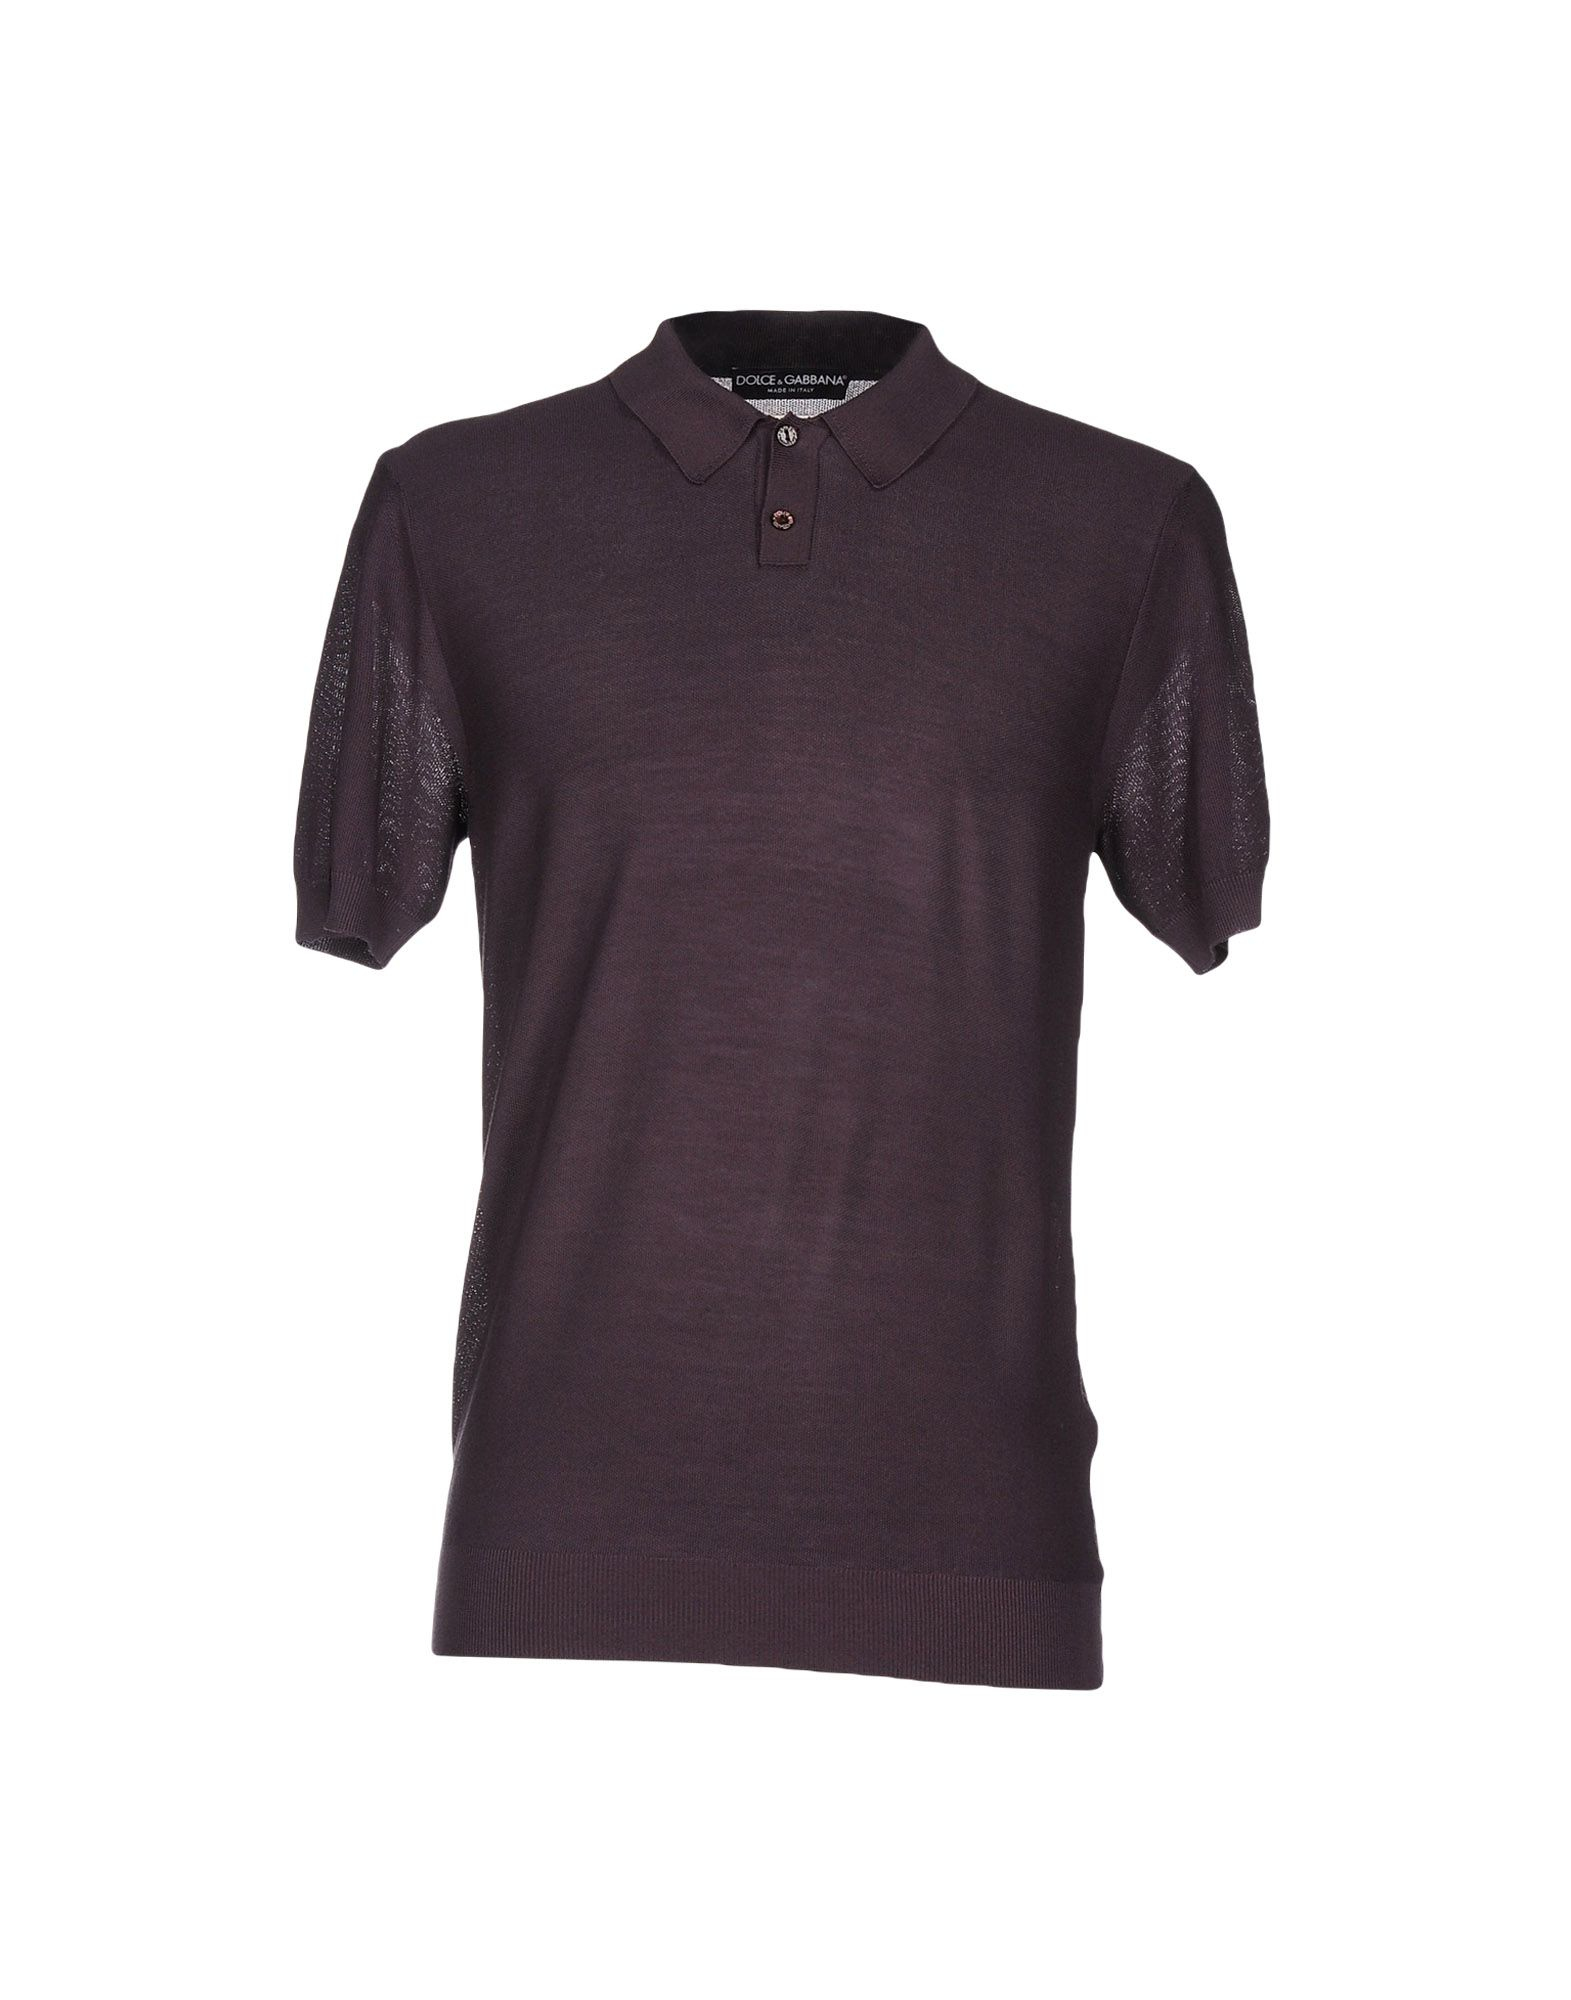 Lyst Dolce Gabbana Polo Shirt In Brown For Men